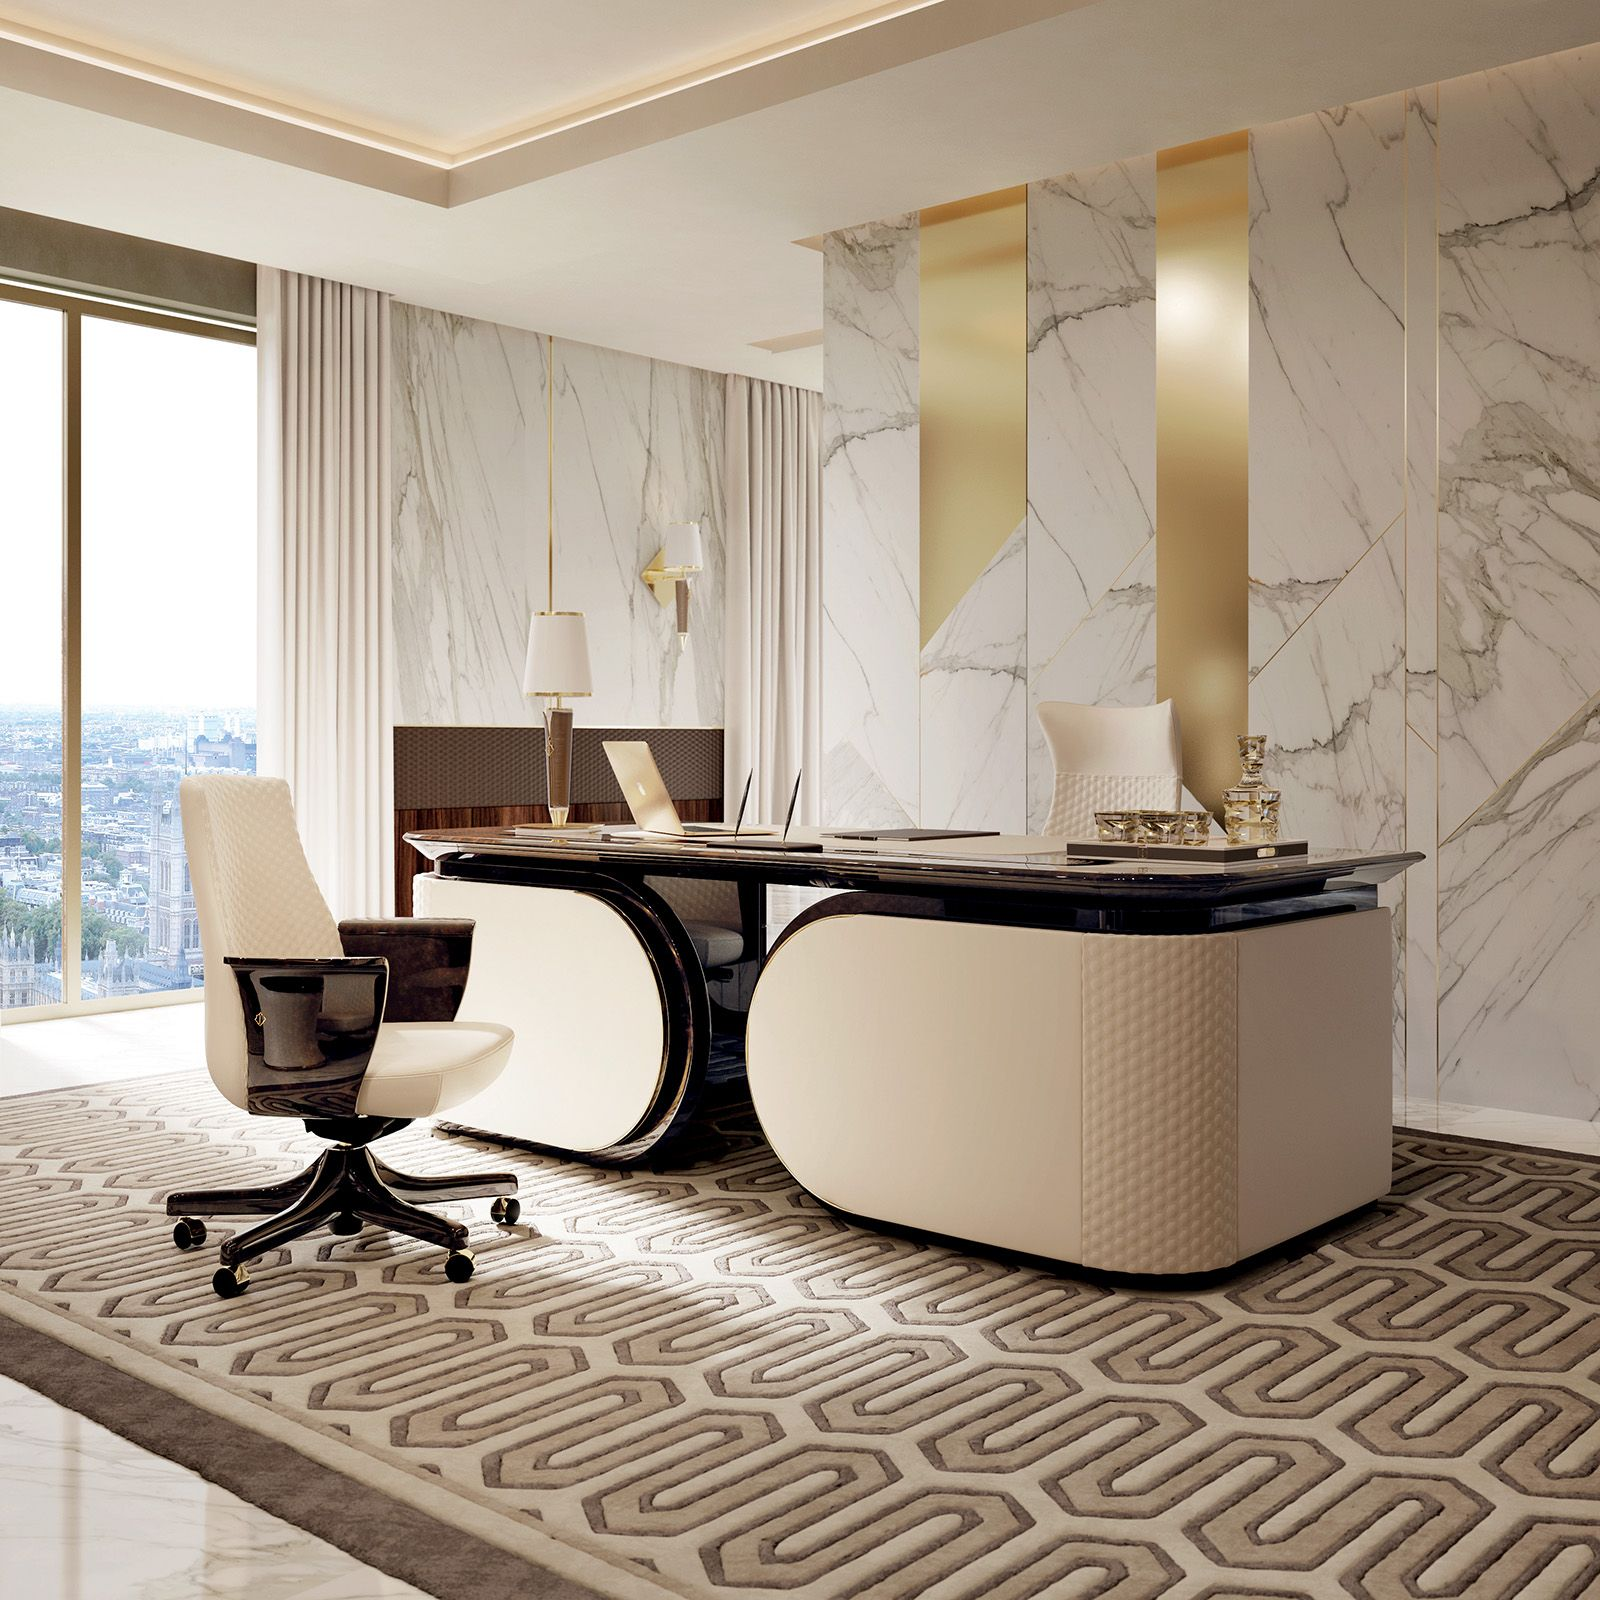 luxurious and splendid italian home design. Study rooms Vogue Collection www turri it Italian luxury office desk  WORK